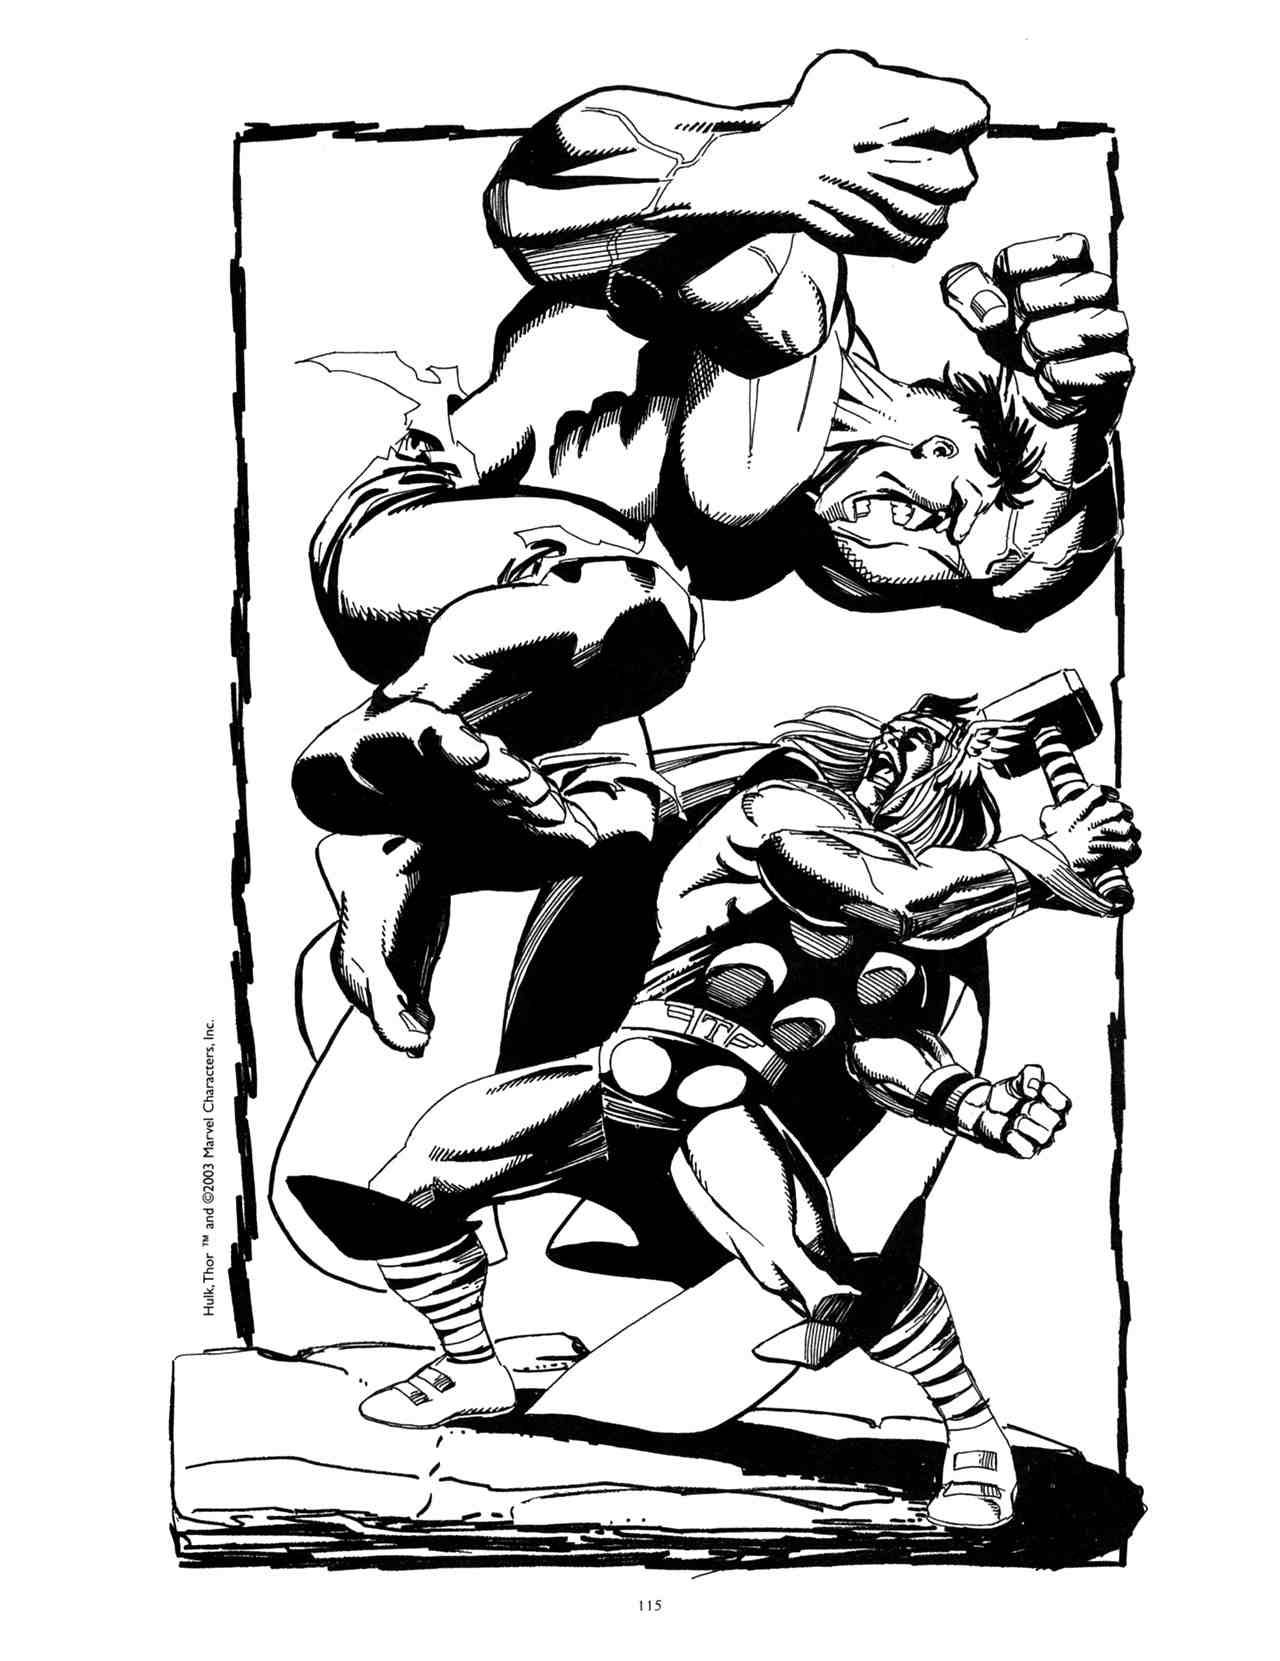 Hulk vs. Thor by George Perez, from Modern Masters vol. 2